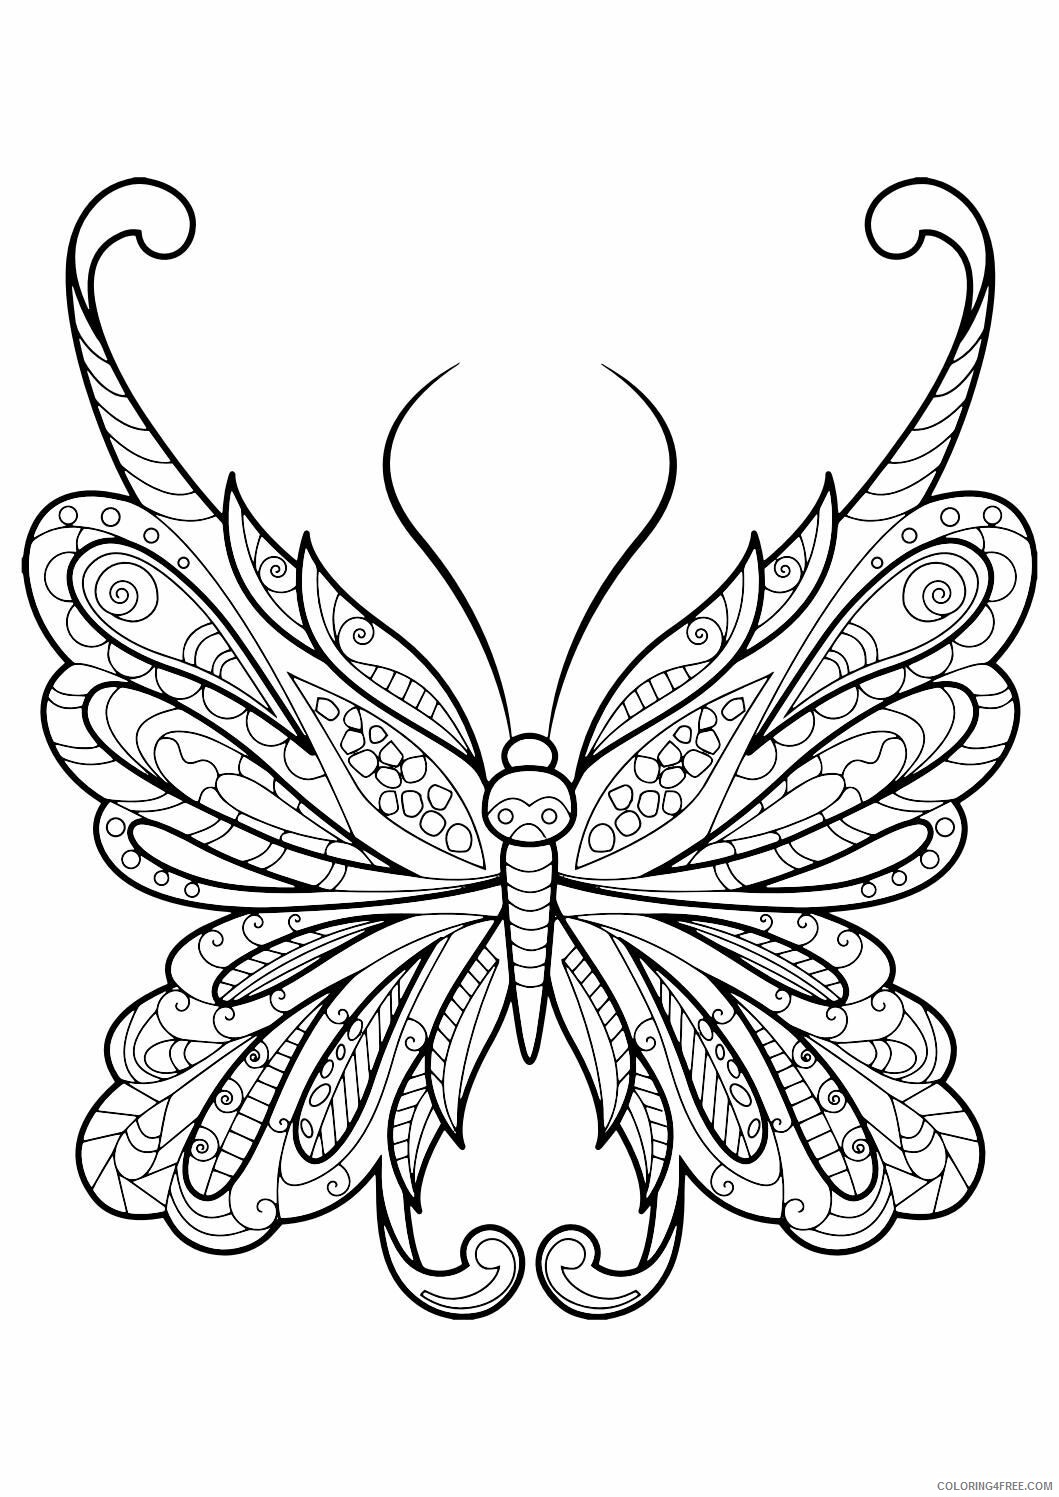 Adult Butterfly Coloring Pages Butterfly for Adults Printable 2020 183 Coloring4free